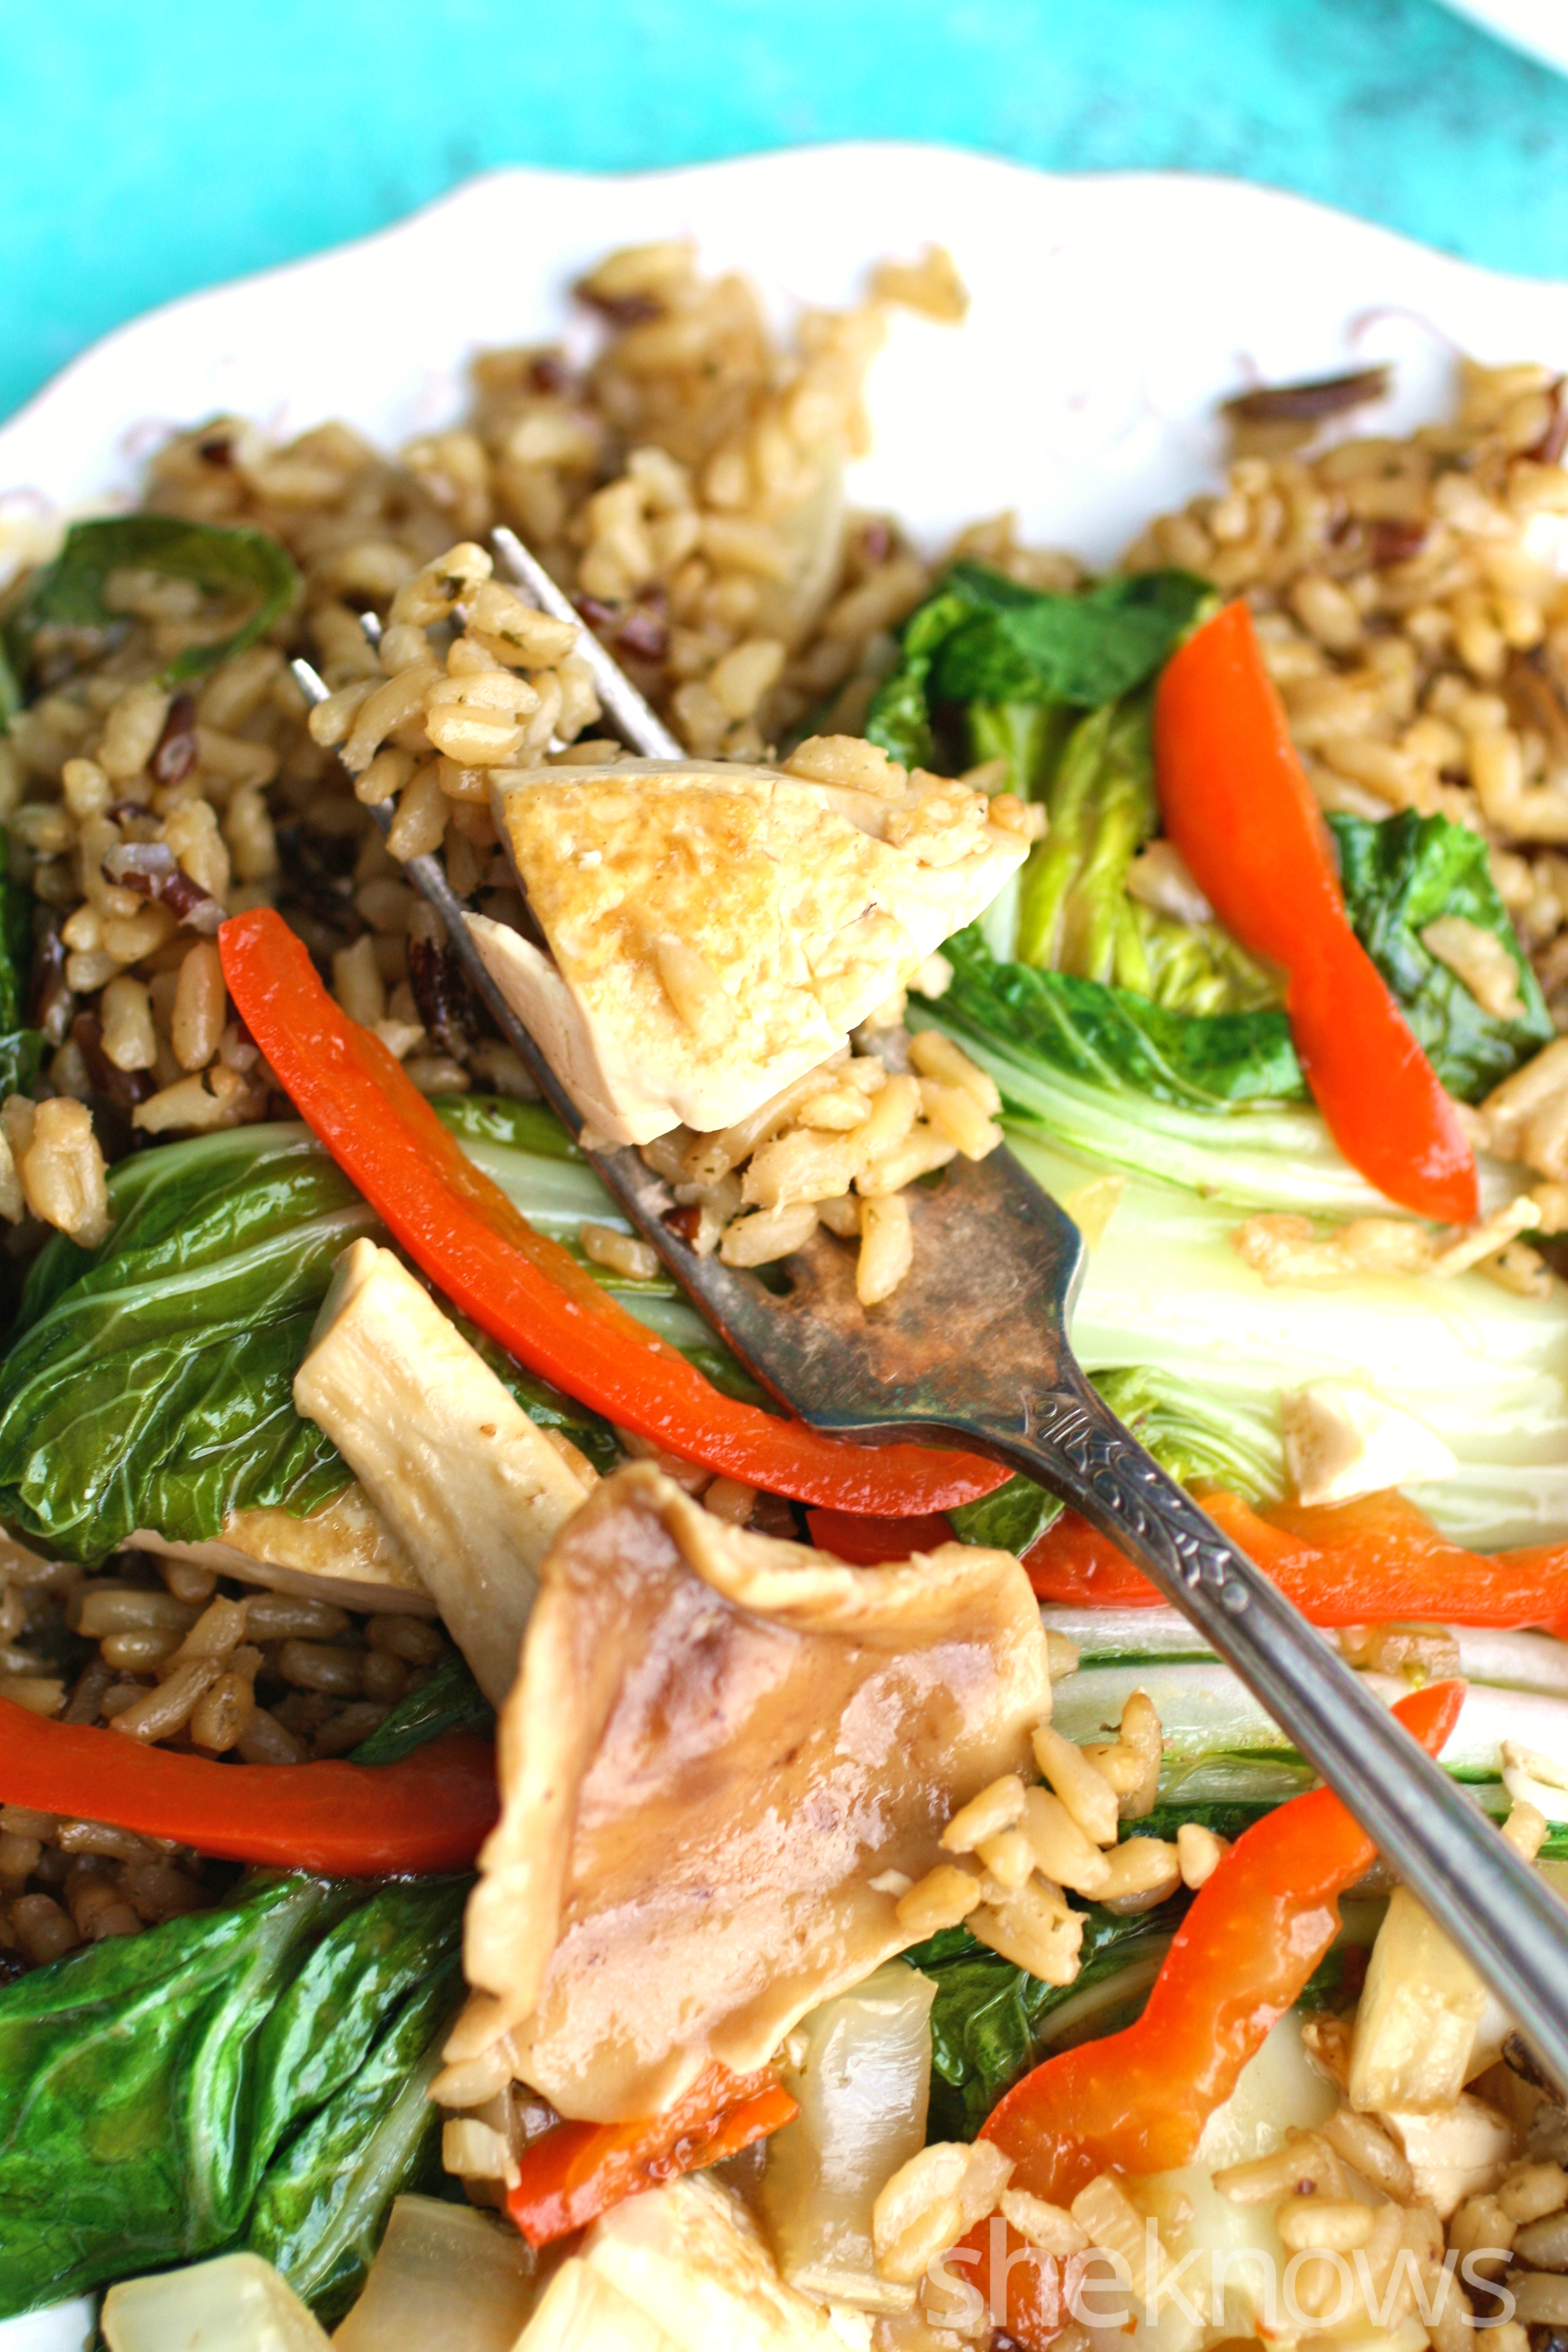 Grab a fork before this meal is gone! You'll love shiitake mushroom, bok choy, and tofu stir-fry on a Meatless Monday!